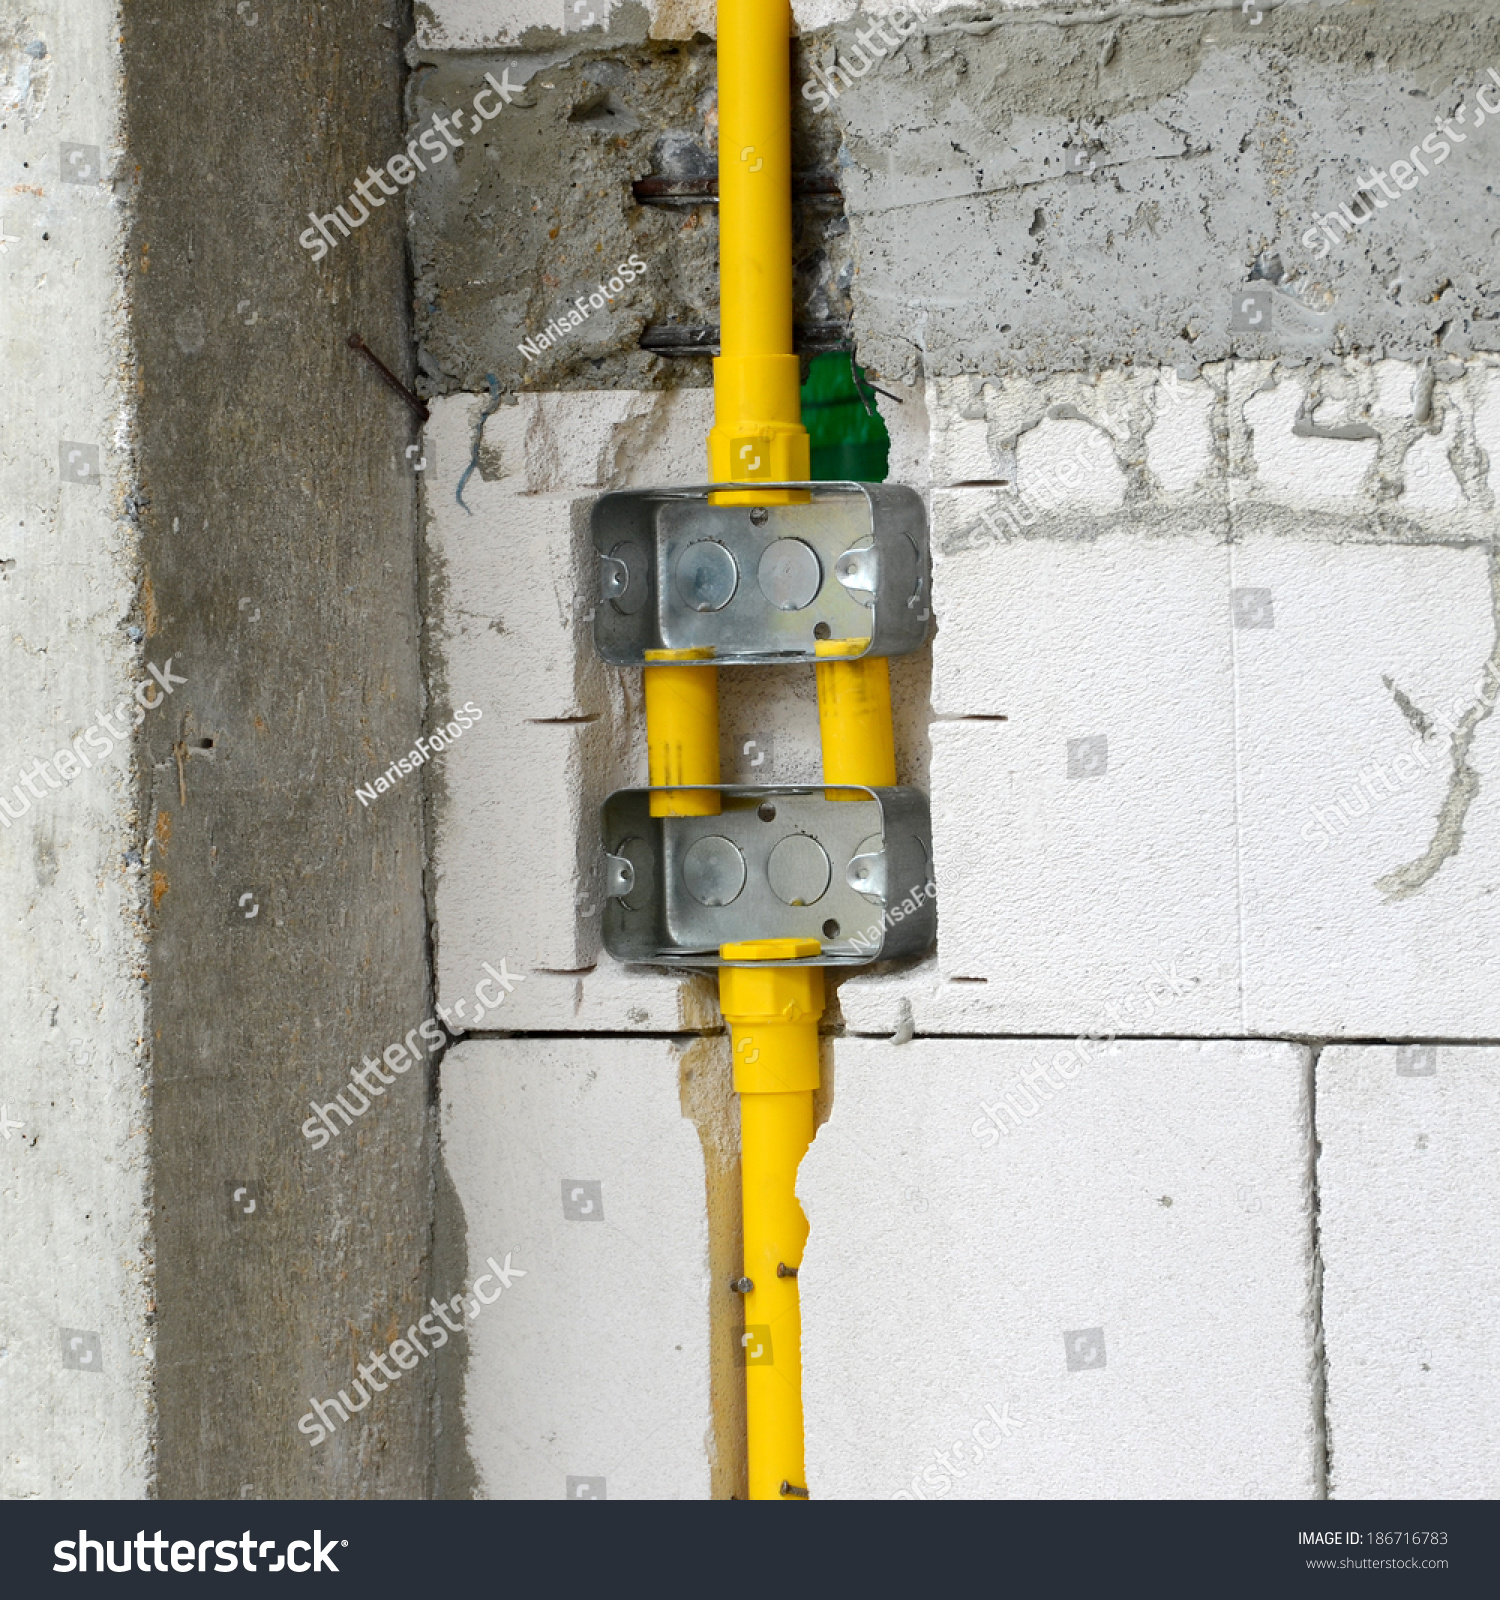 Electrical Wiring In Cinder Block Walls Trusted Diagram Wall Pvc Pipe Boxes Wires Buried Stock Photo Edit Now Through A Studded